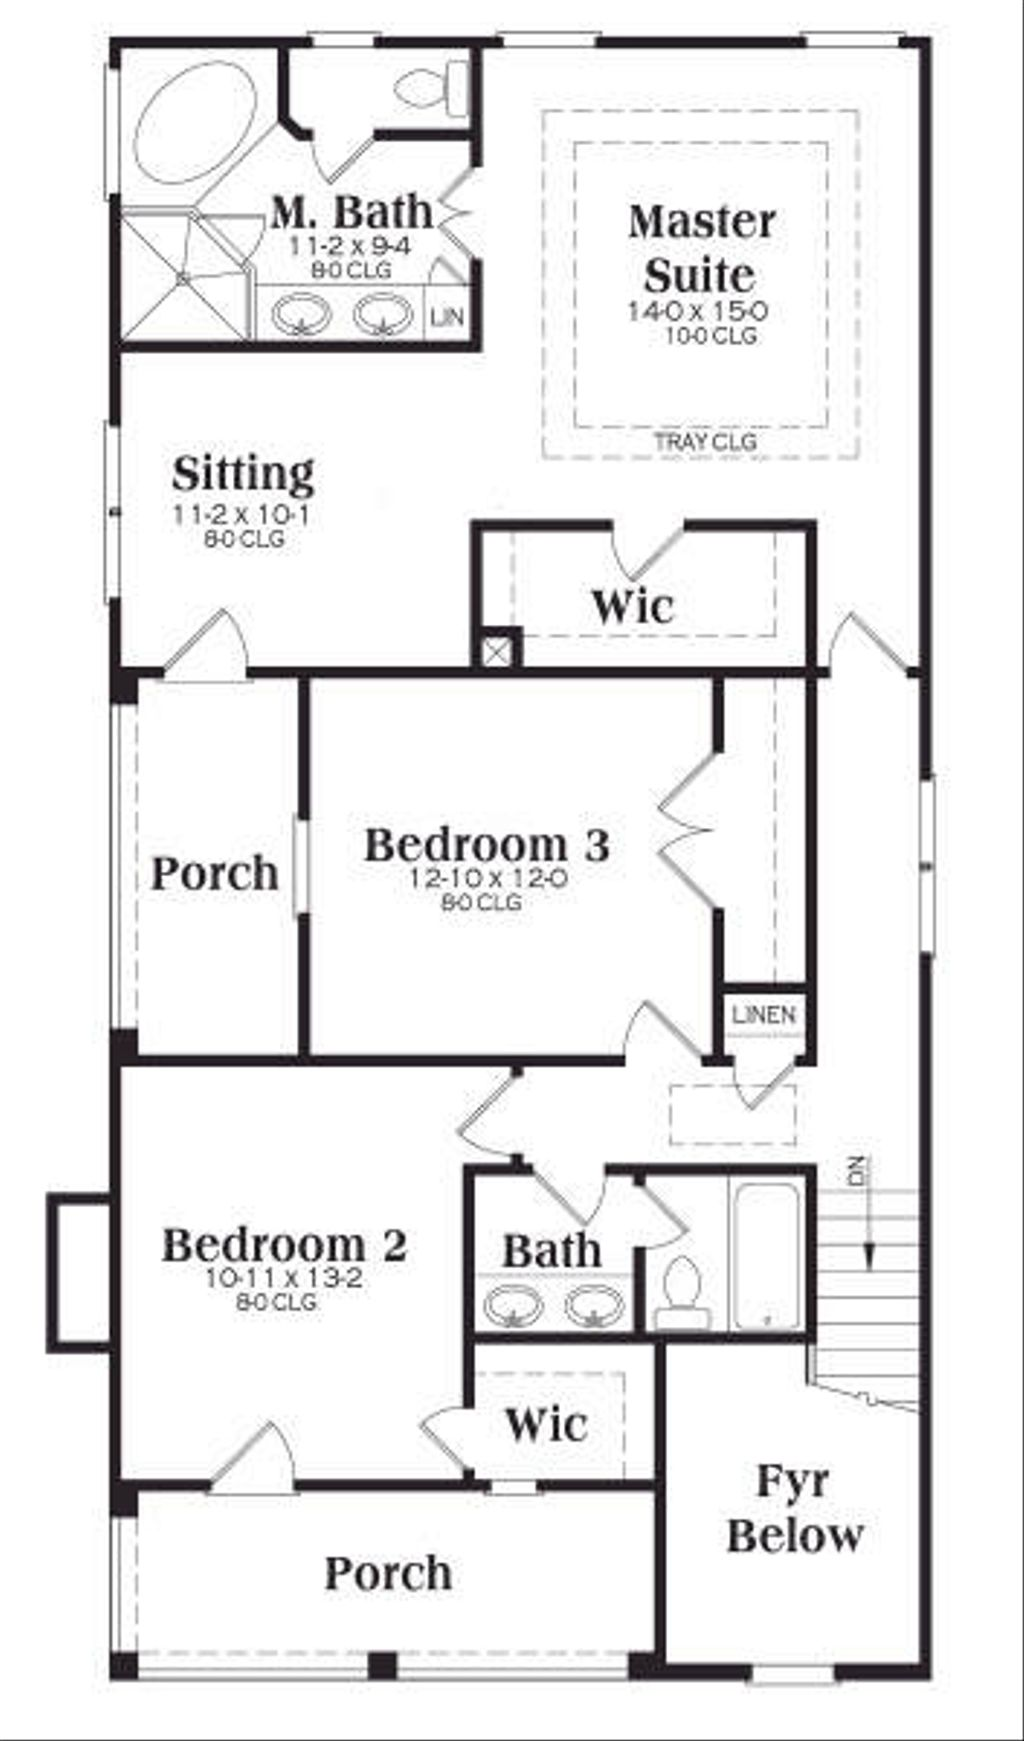 Southern style house plan 3 beds 2 5 baths 1785 sq ft for Www floorplans com